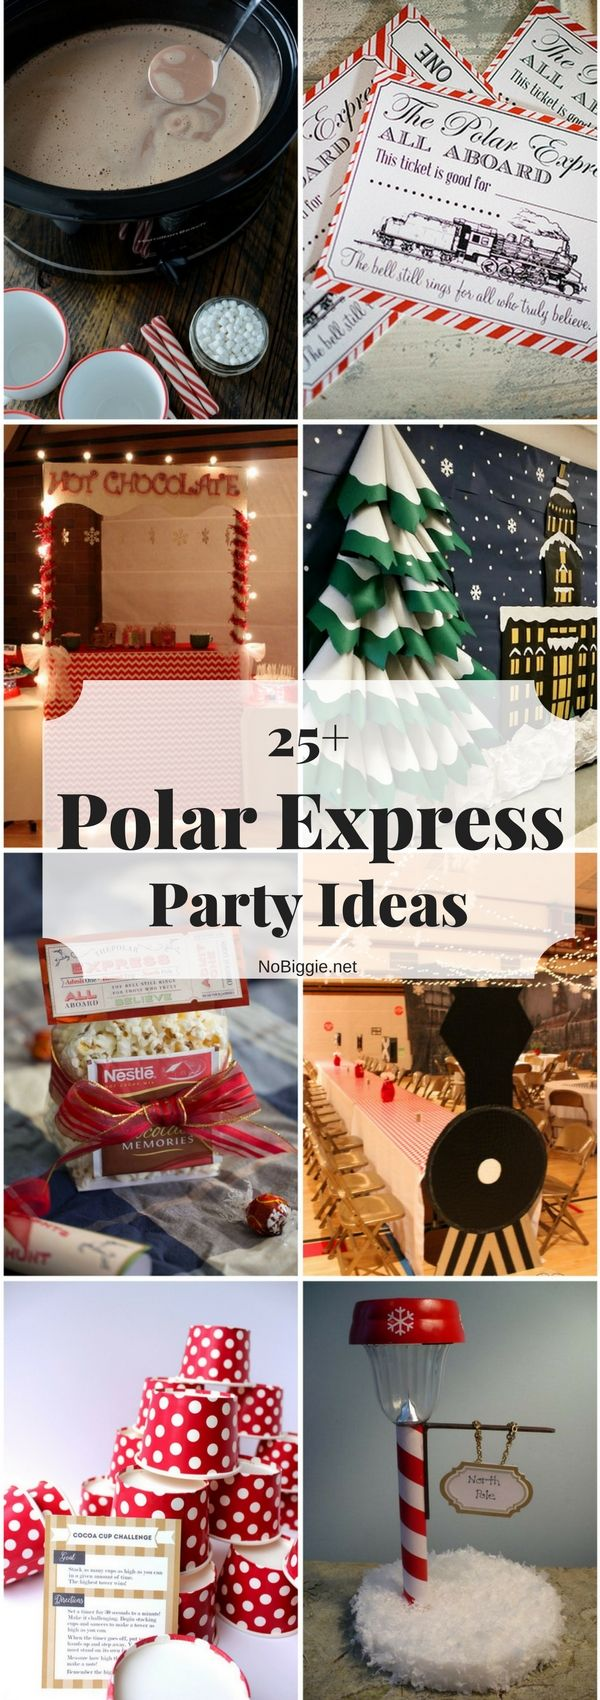 Christmas Party Ideas For Family Part - 17: 25+ Polar Express Party Ideas | NoBiggie.net